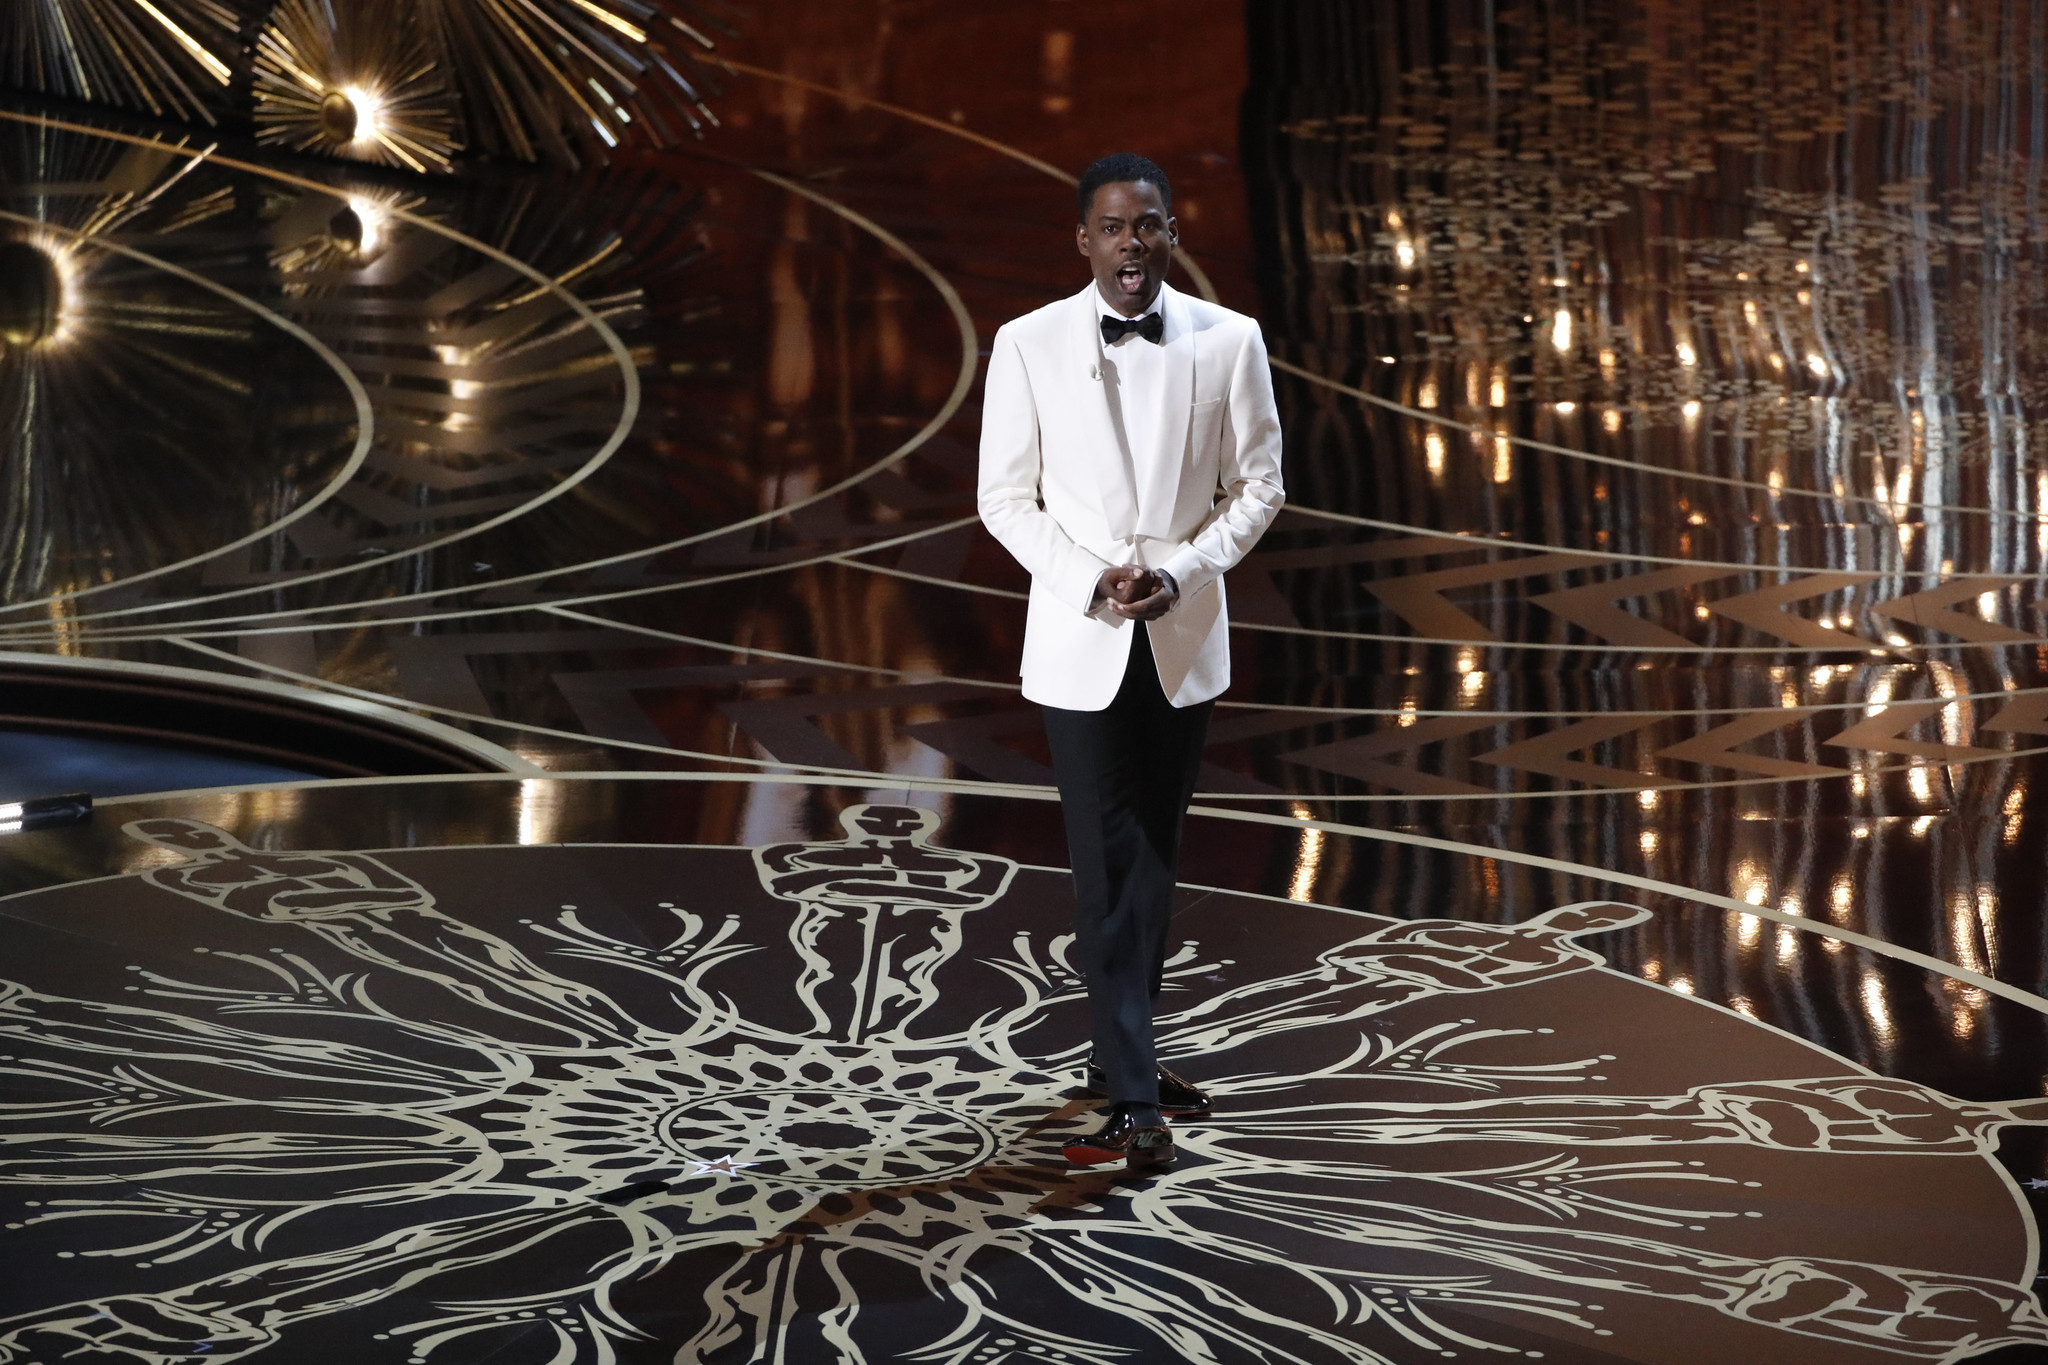 Chris Rock addresses the audience as host of the 88th Academy Awards on Sunday. (Robert Gauthier / Los Angeles Times)